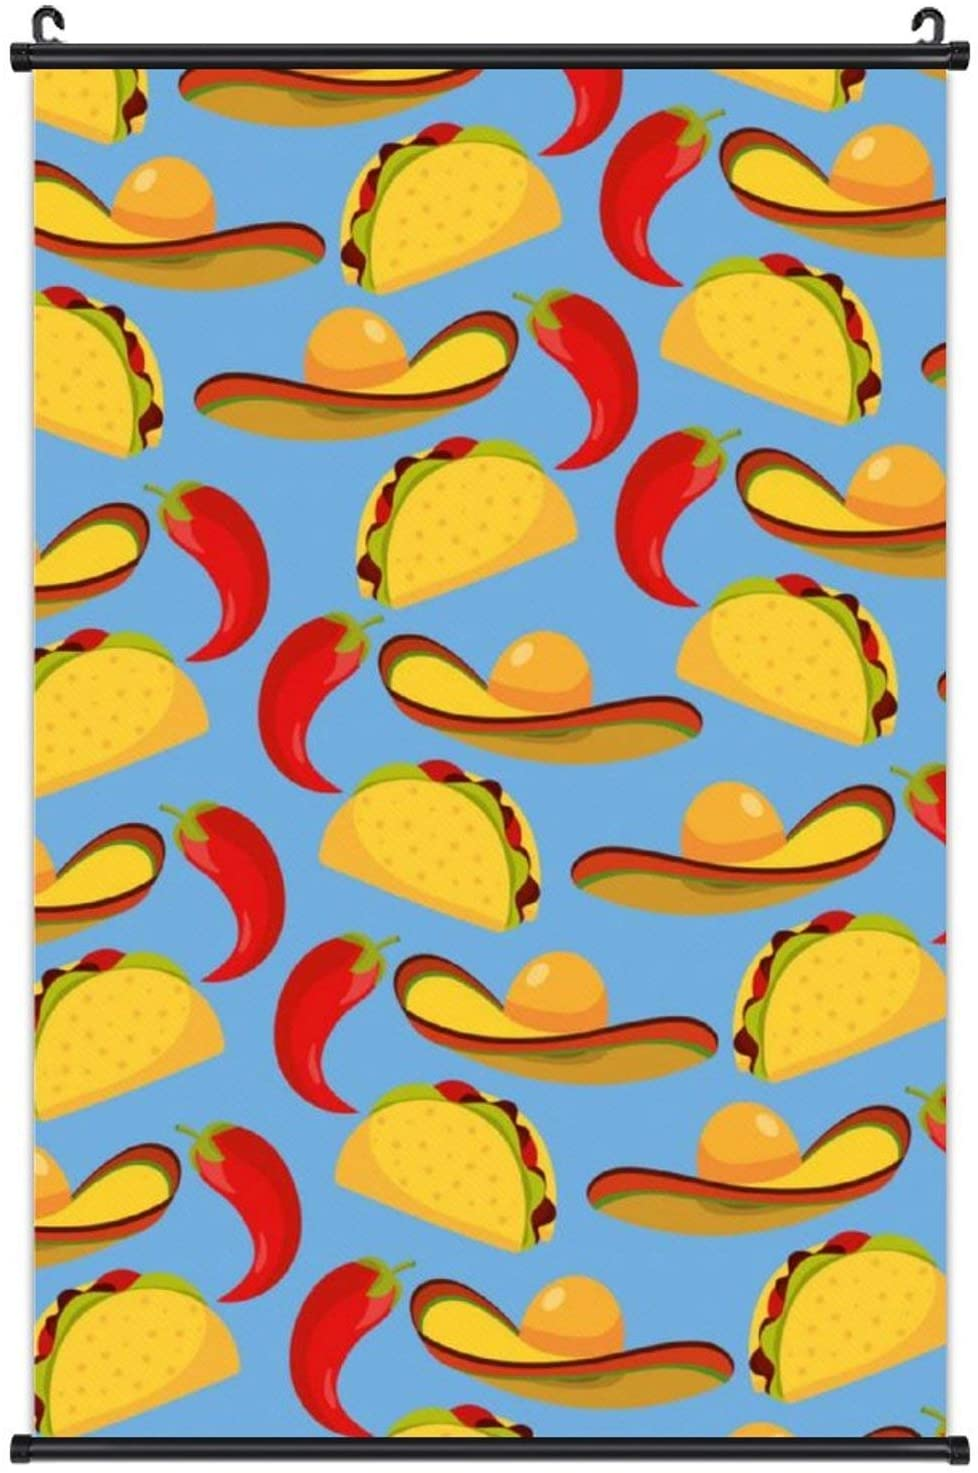 NiYoung Wall Art Painting Hanging Poster Canvas Prints Decor Printed On Canvas Scroll Hanger Painting Room Wall Decor - Mexican Chill Pepper Tacos Food with Hat